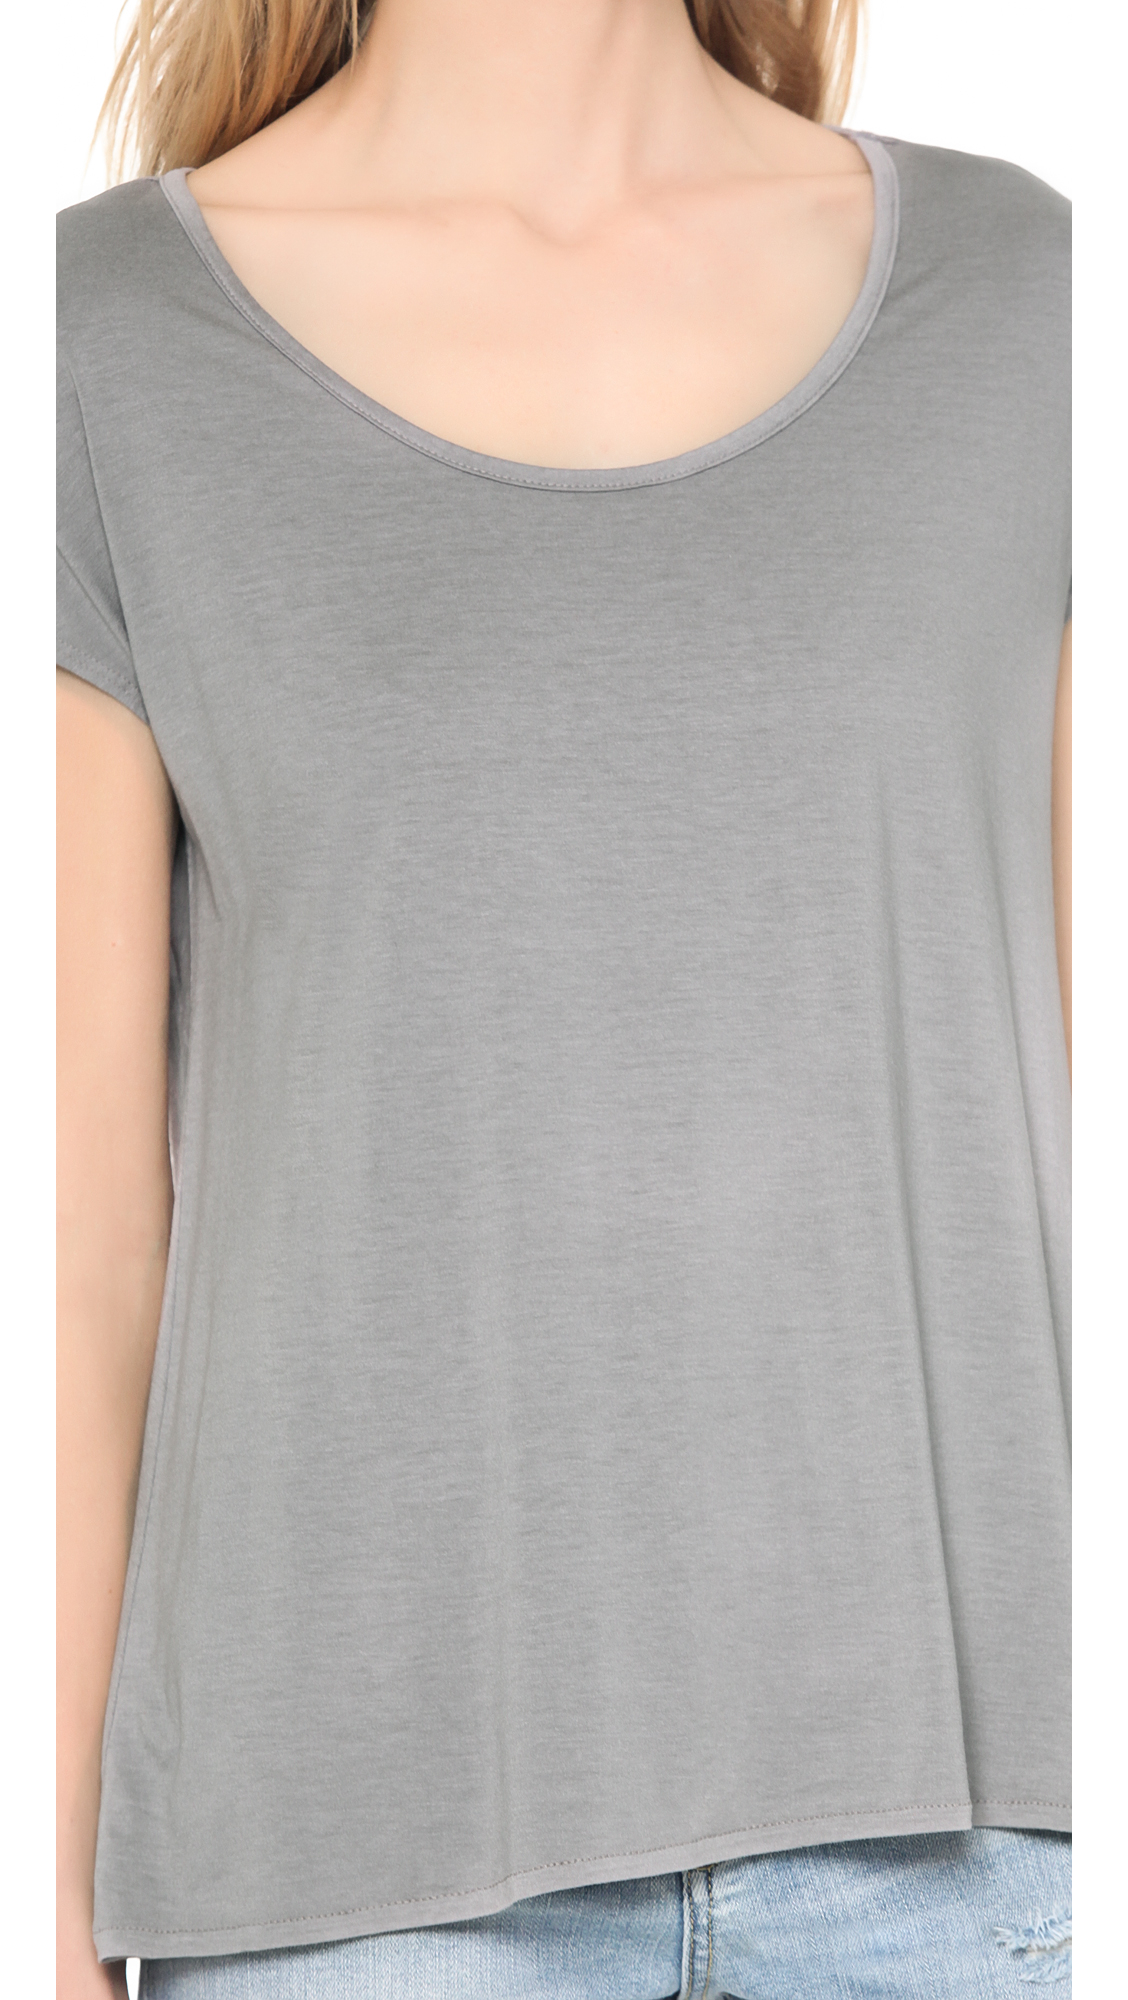 Lyst three dots cap sleeve relaxed tee in gray for Three dots t shirts